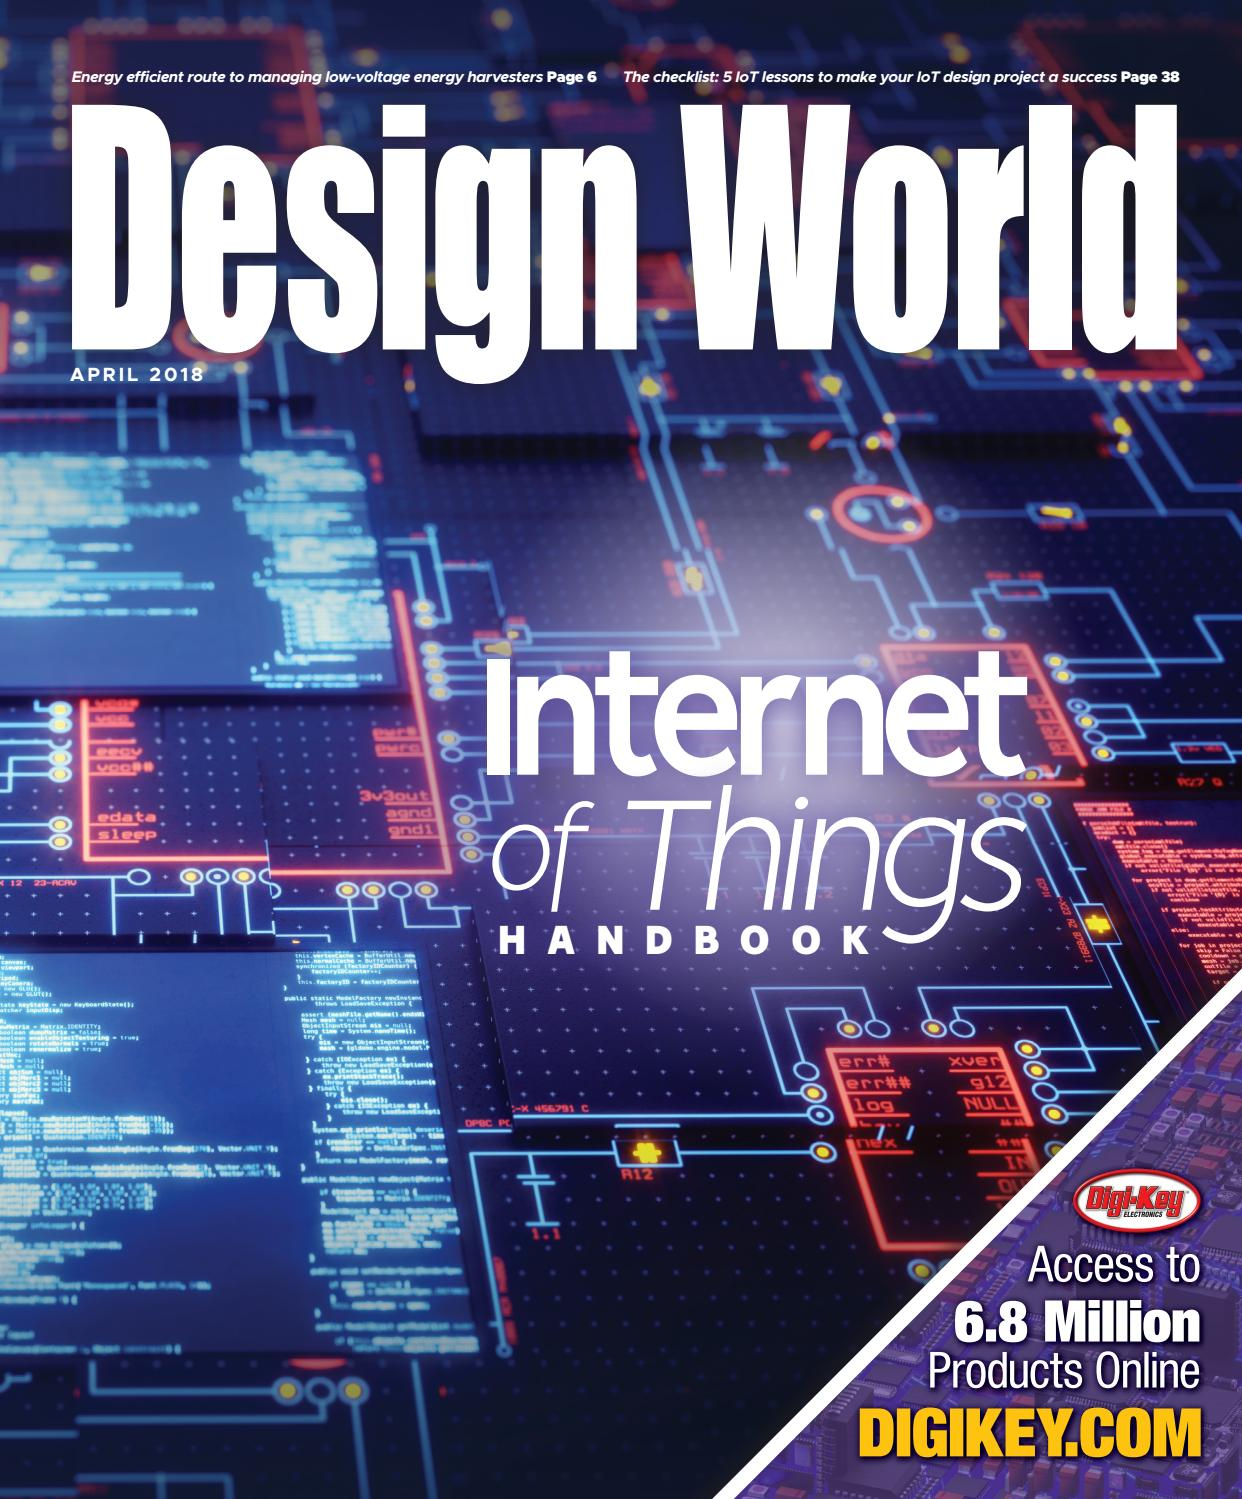 Internet Of Things Handbook April 2018 By Wtwh Media Llc Issuu Output Signal Twowire Hall Switches